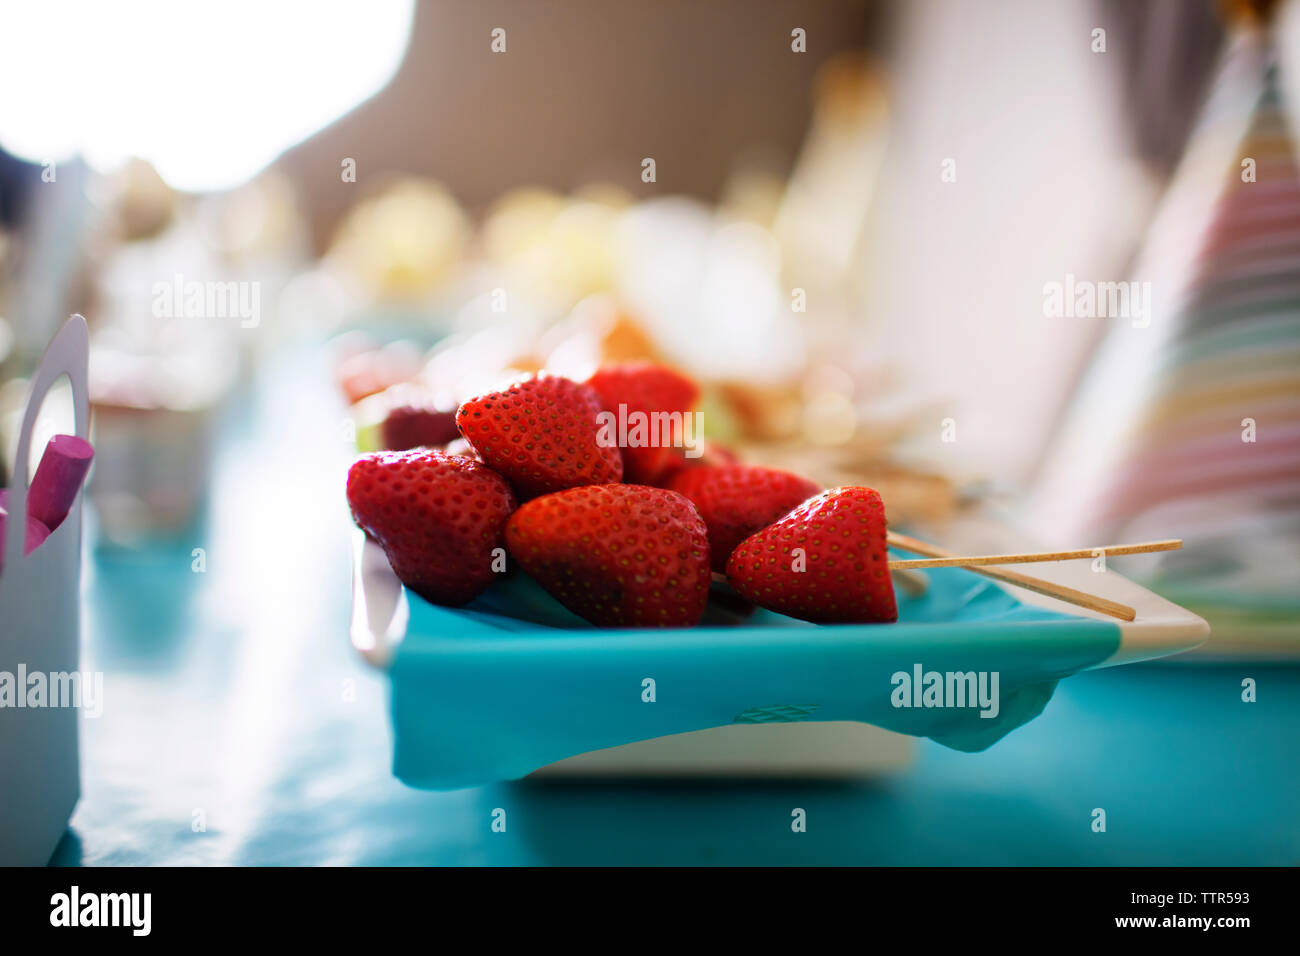 Close-up of strawberries and toothpicks in plate on table - Stock Image